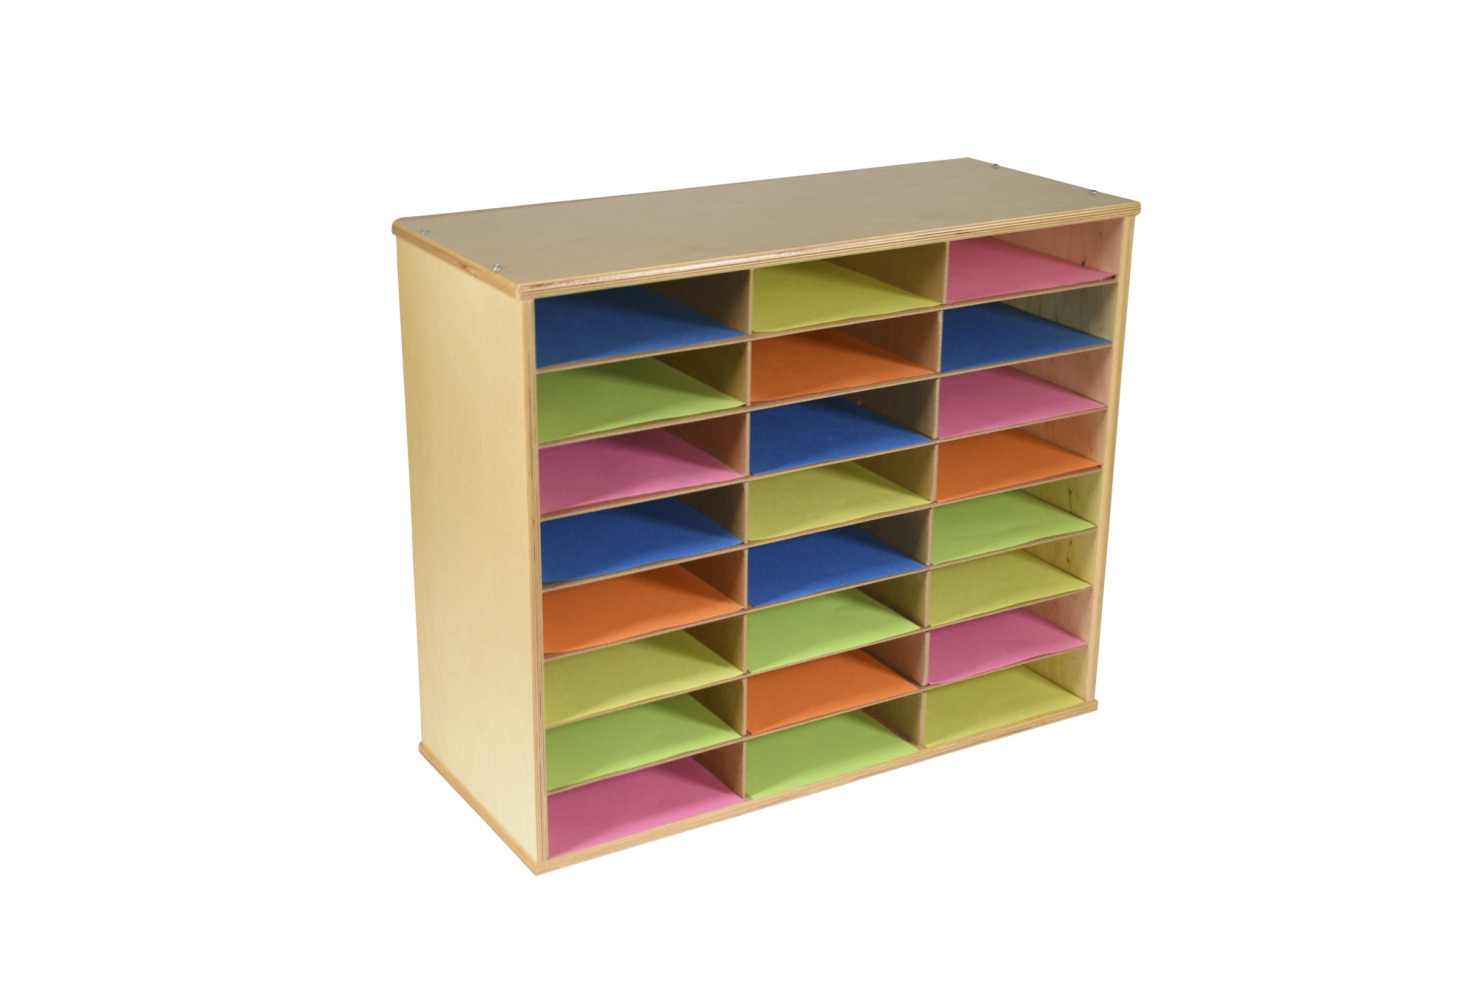 Classroom Select Storage Organizer, 24 Shelves, 29 x 12 x 24 Inches, Natural Wood Exterior